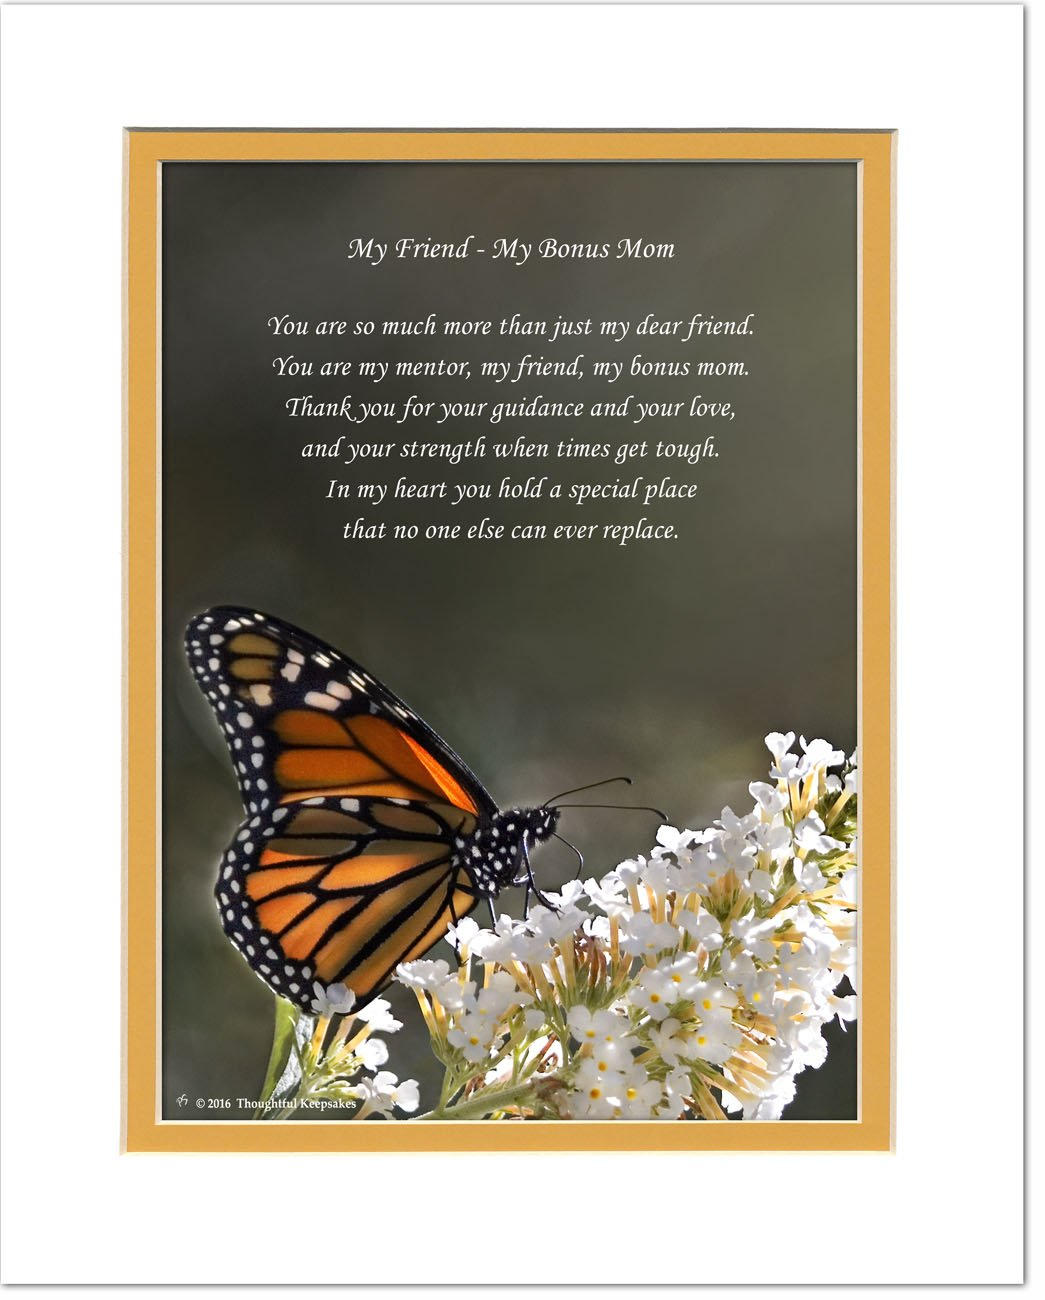 Second Mom Stepmom Or Friend Like A Gift With You Are My Mentor Bonus Poem Butterfly Photo 8x10 Double Matted